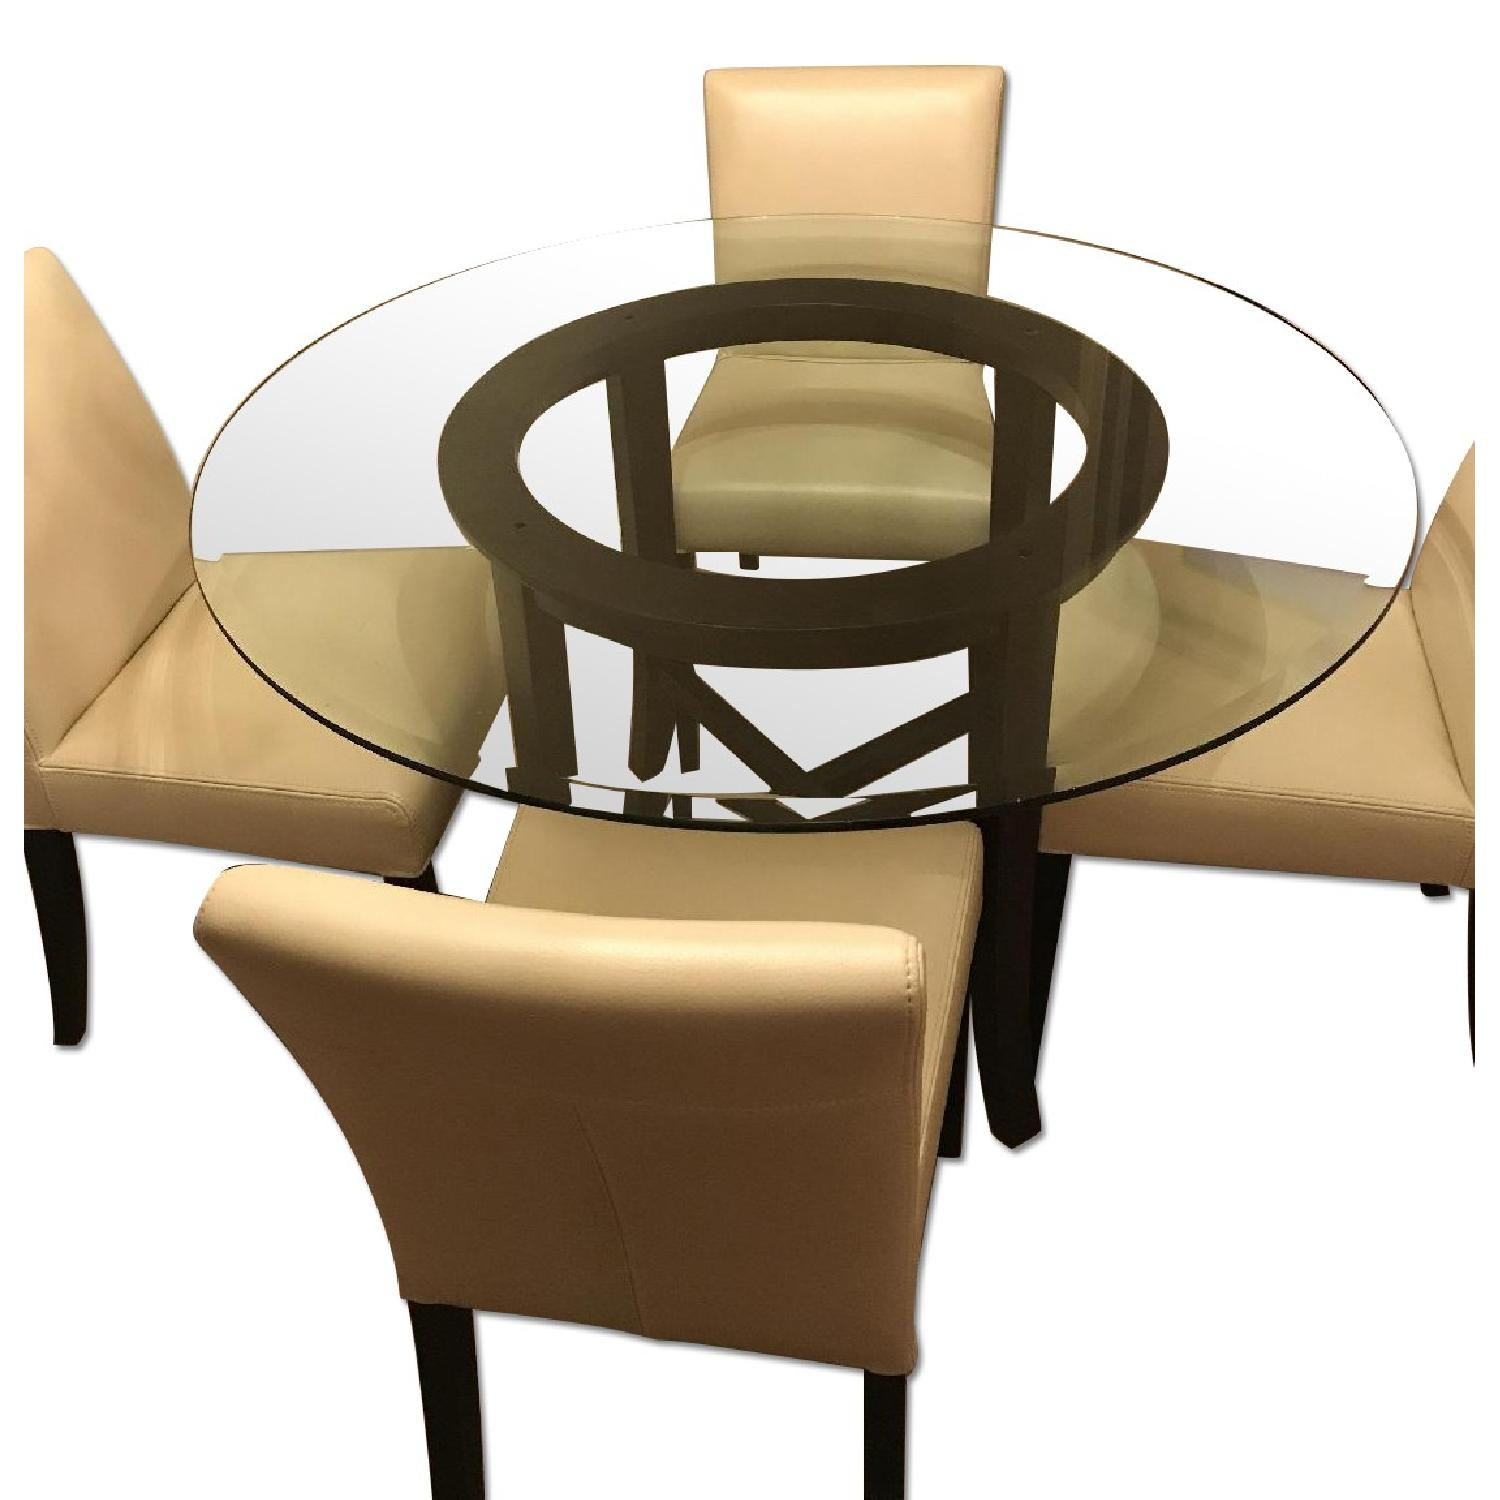 Crate and barrel glass table